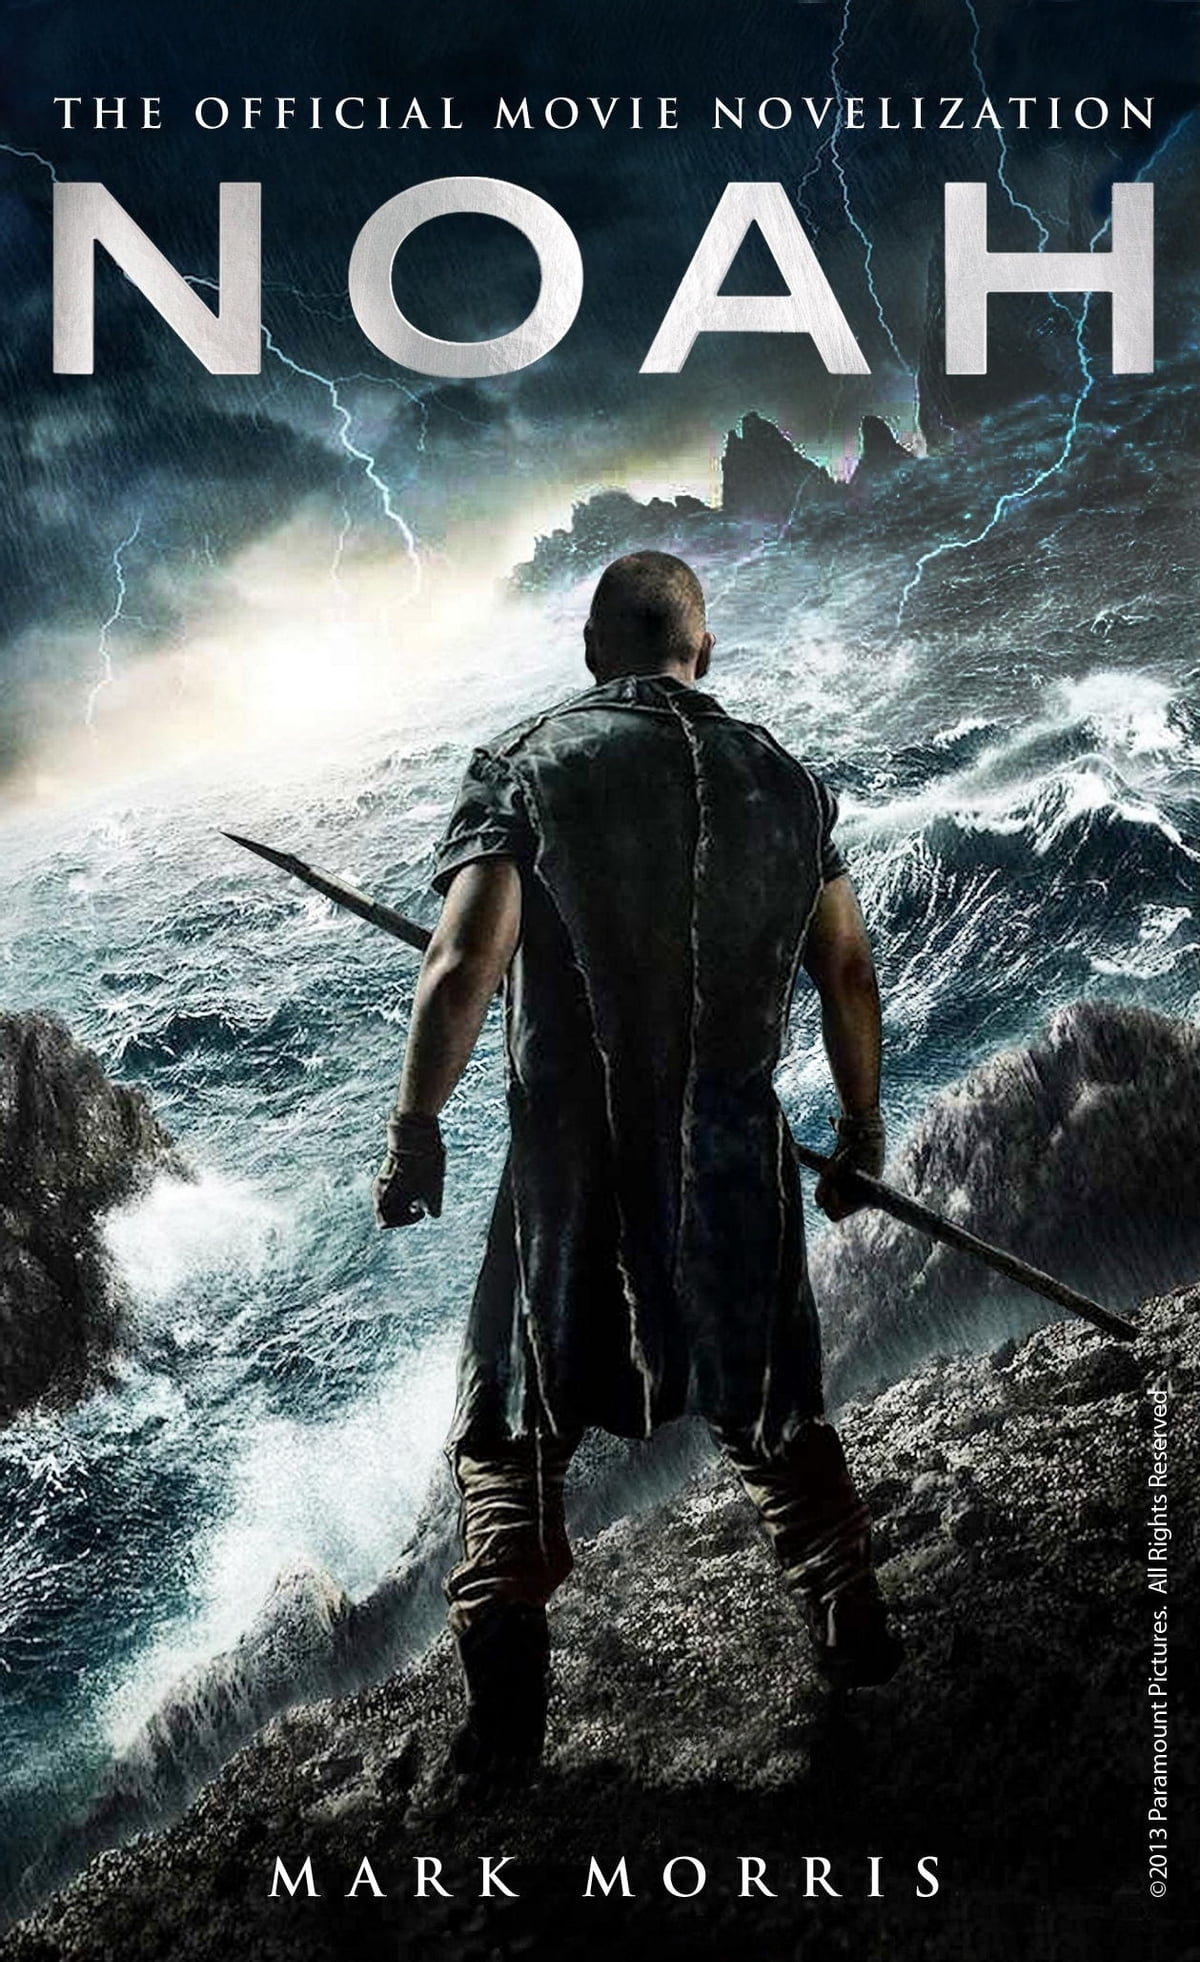 Noah: The Official Movie Novelization eBook by Mark Morris - 9781783292578  | Rakuten Kobo